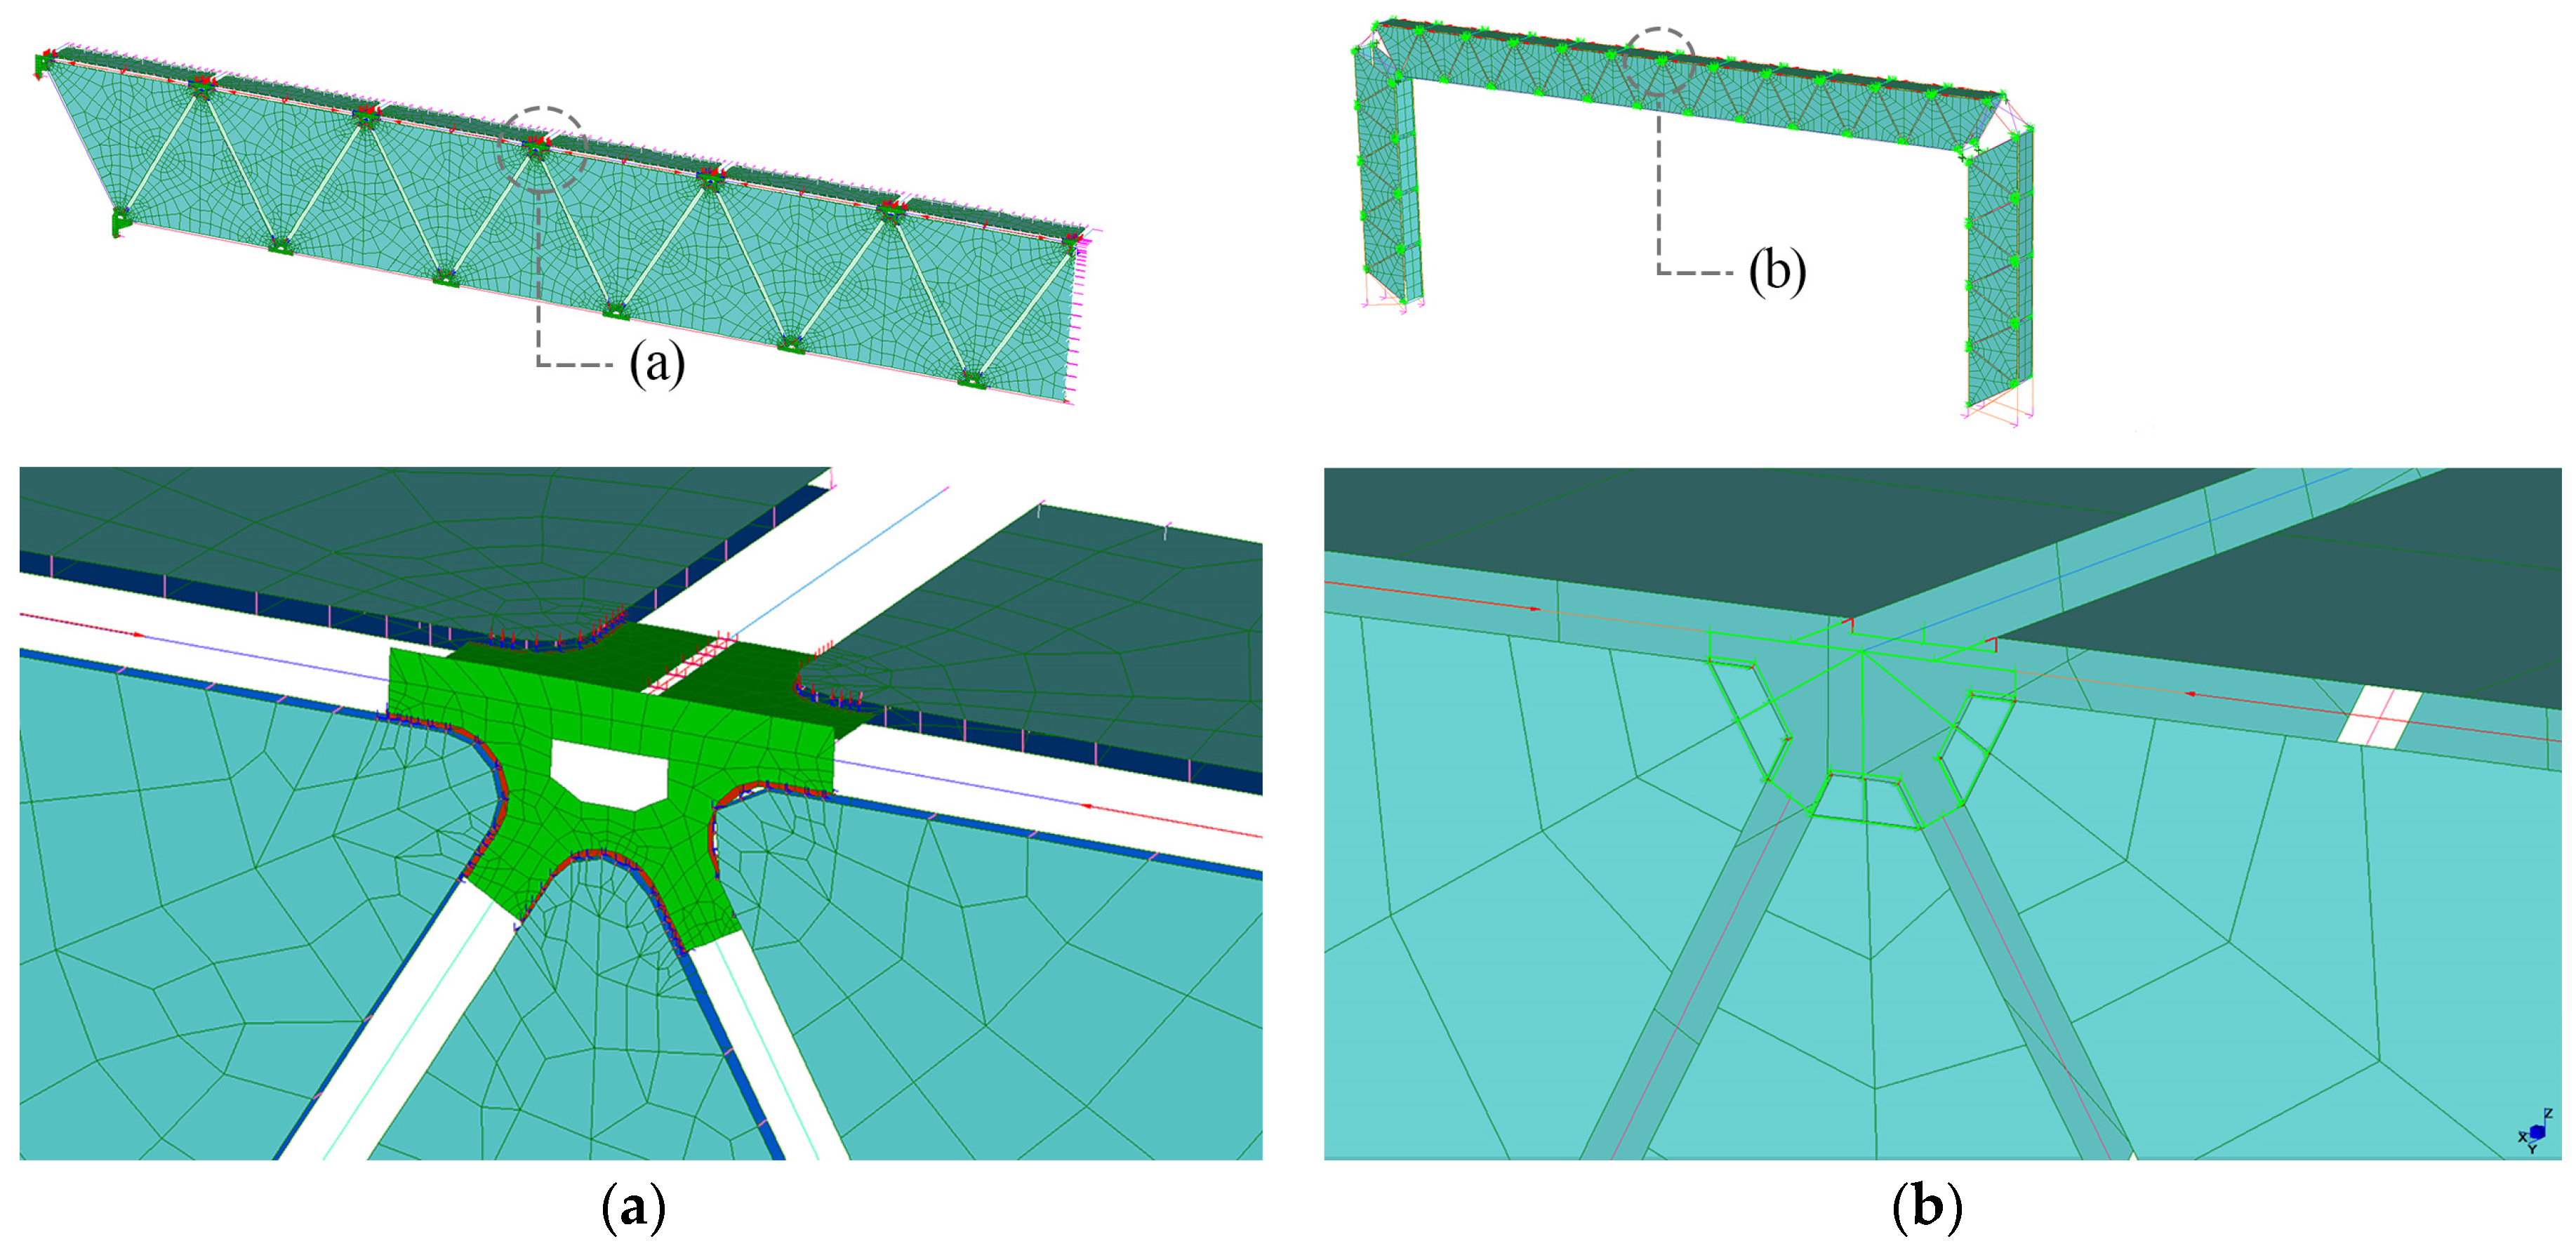 Buildings Free Full Text The Tvt Glass Pavilion Theoretical Bridge Diagram Related Keywords Suggestions Beam 07 00050 G011